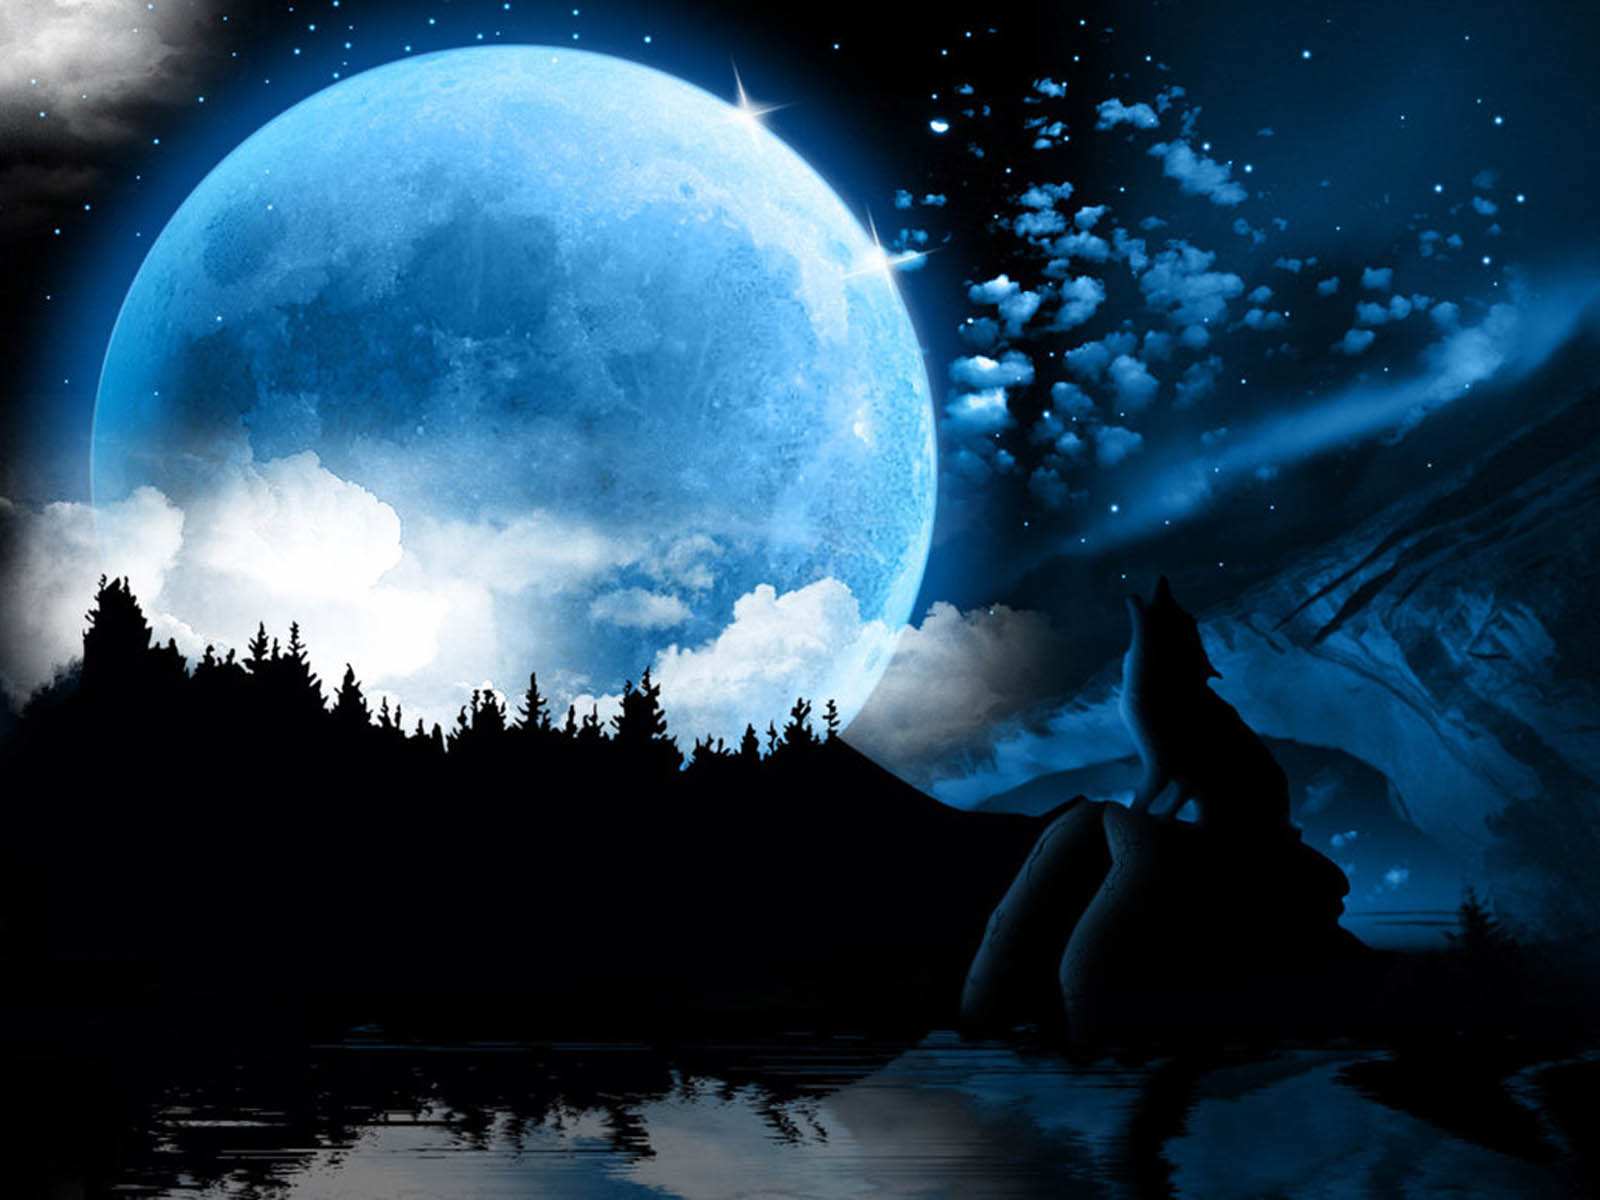 wallpaper Moon Fantasy Wallpapers 1600x1200